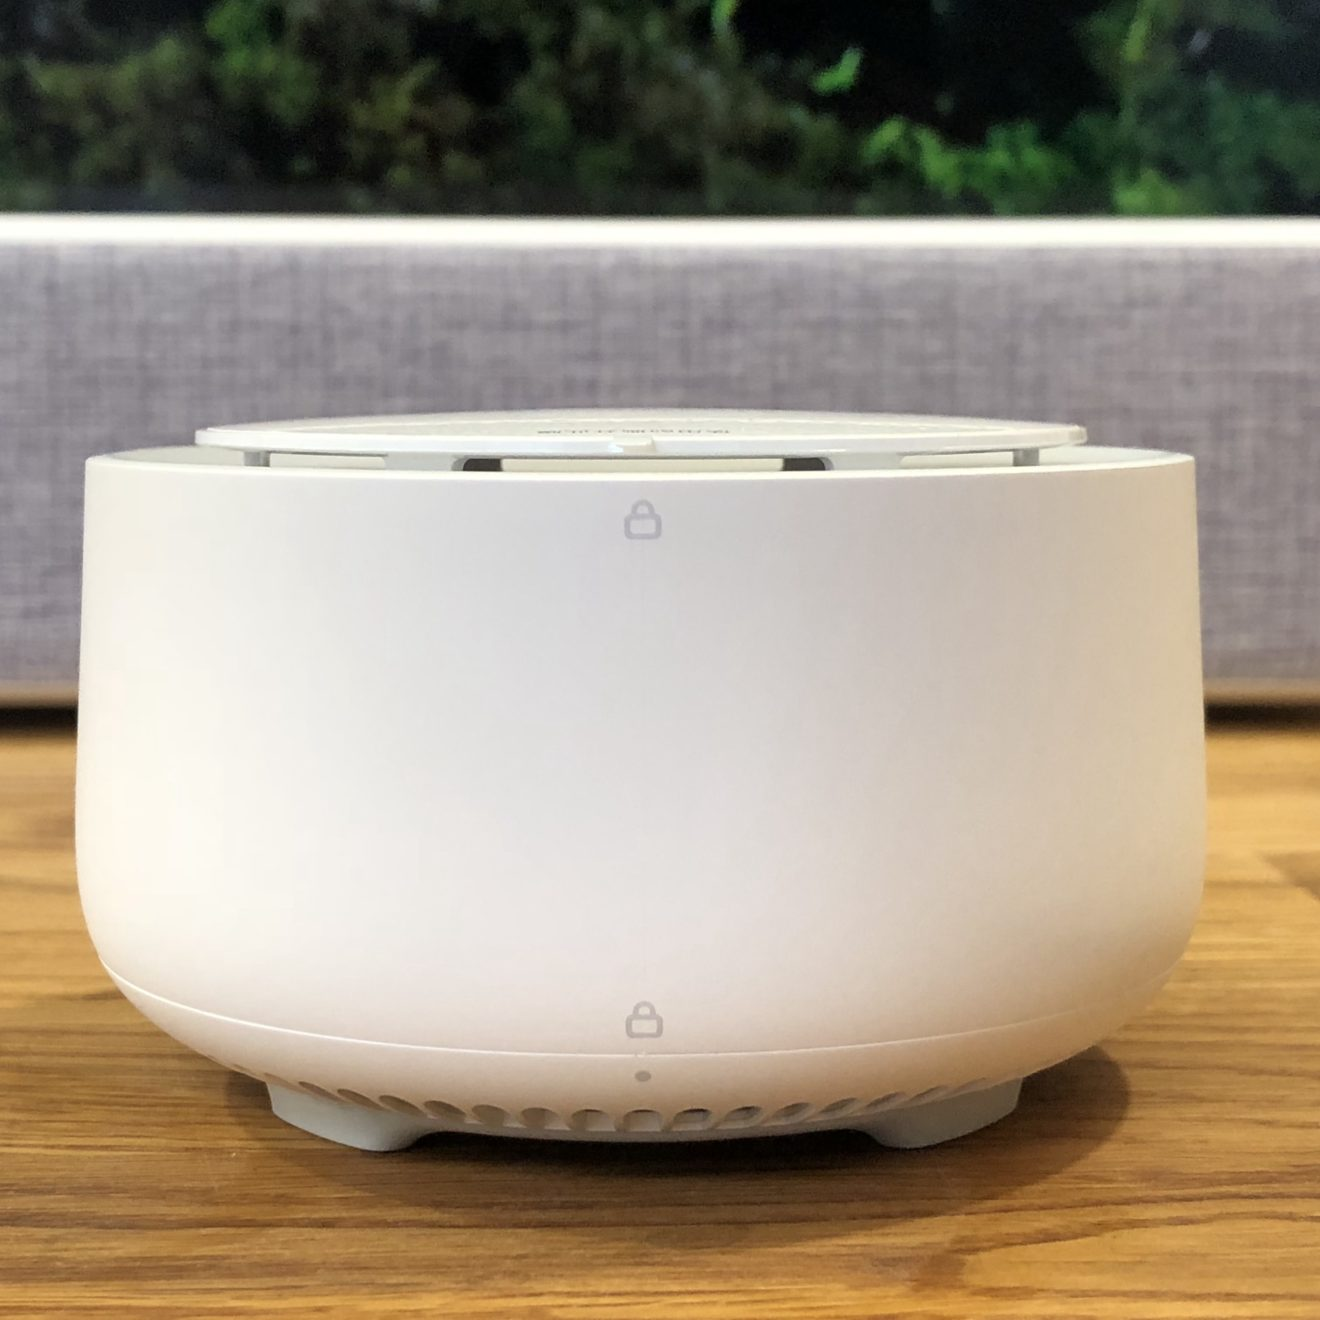 A mosquito repellent from Xiaomi